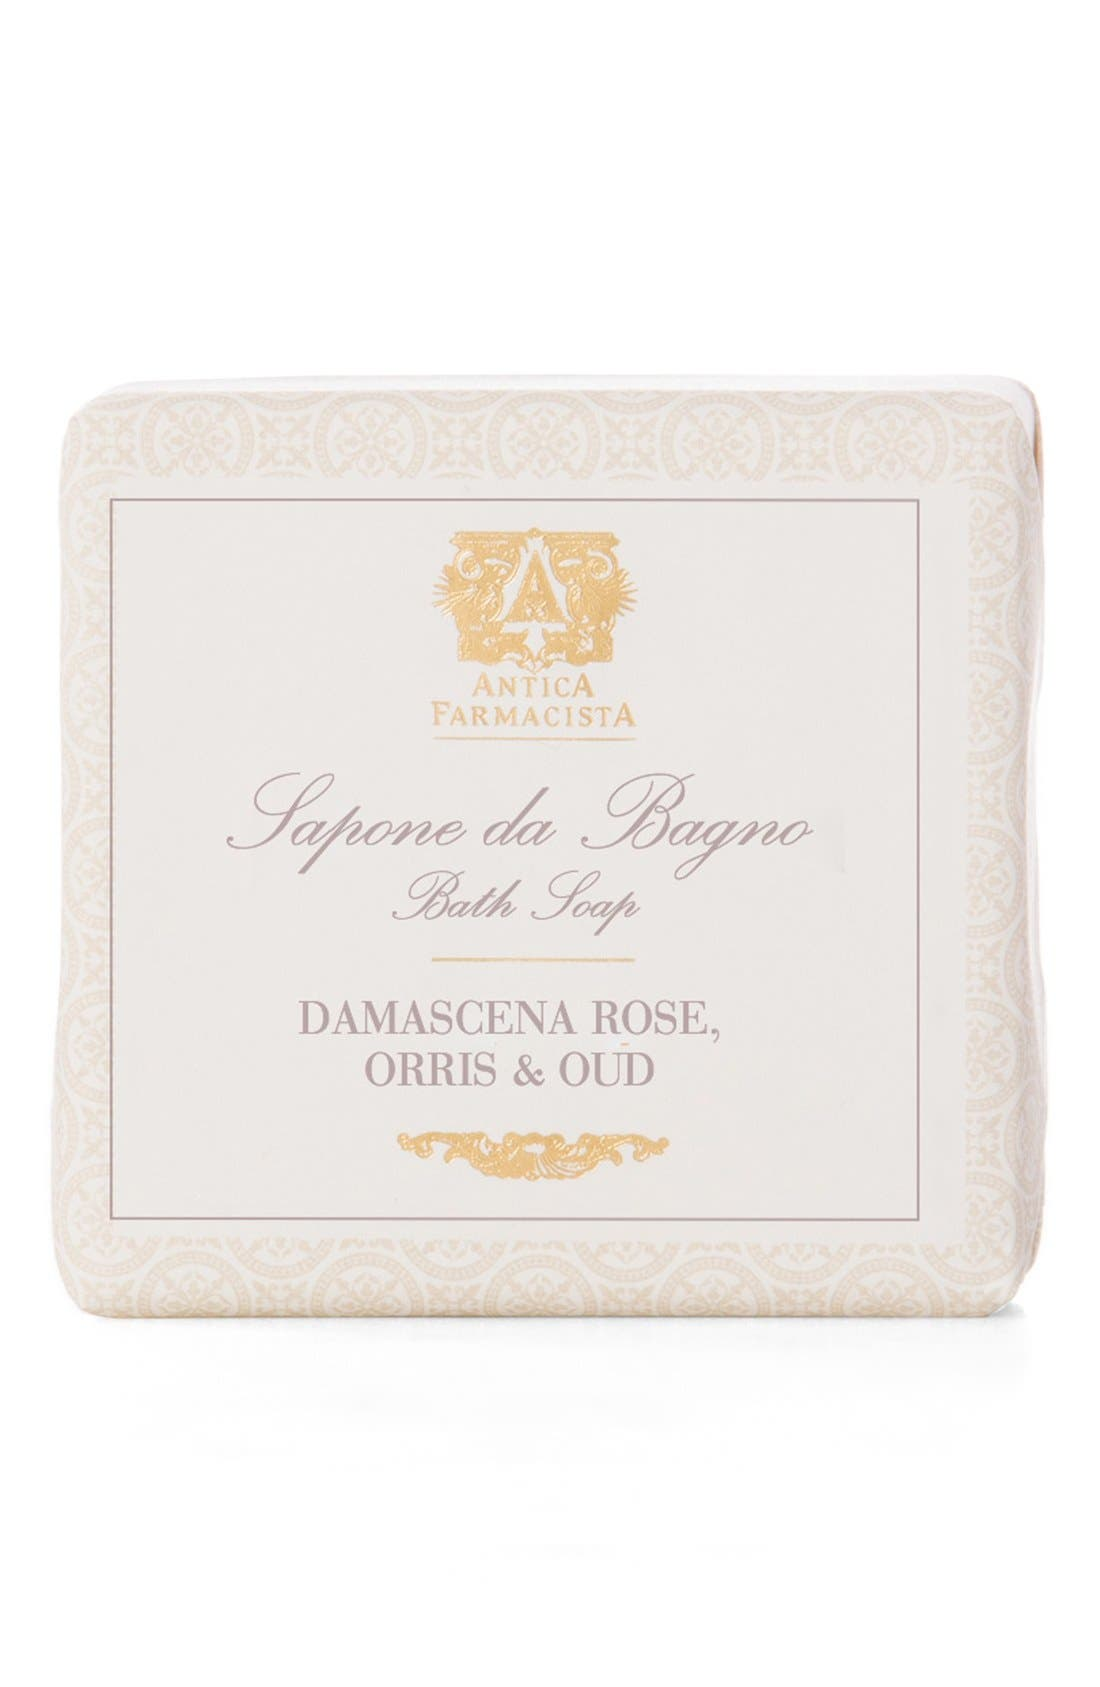 Antica Farmacista 'Damascena Rose, Orris & Oud' Bar Soap